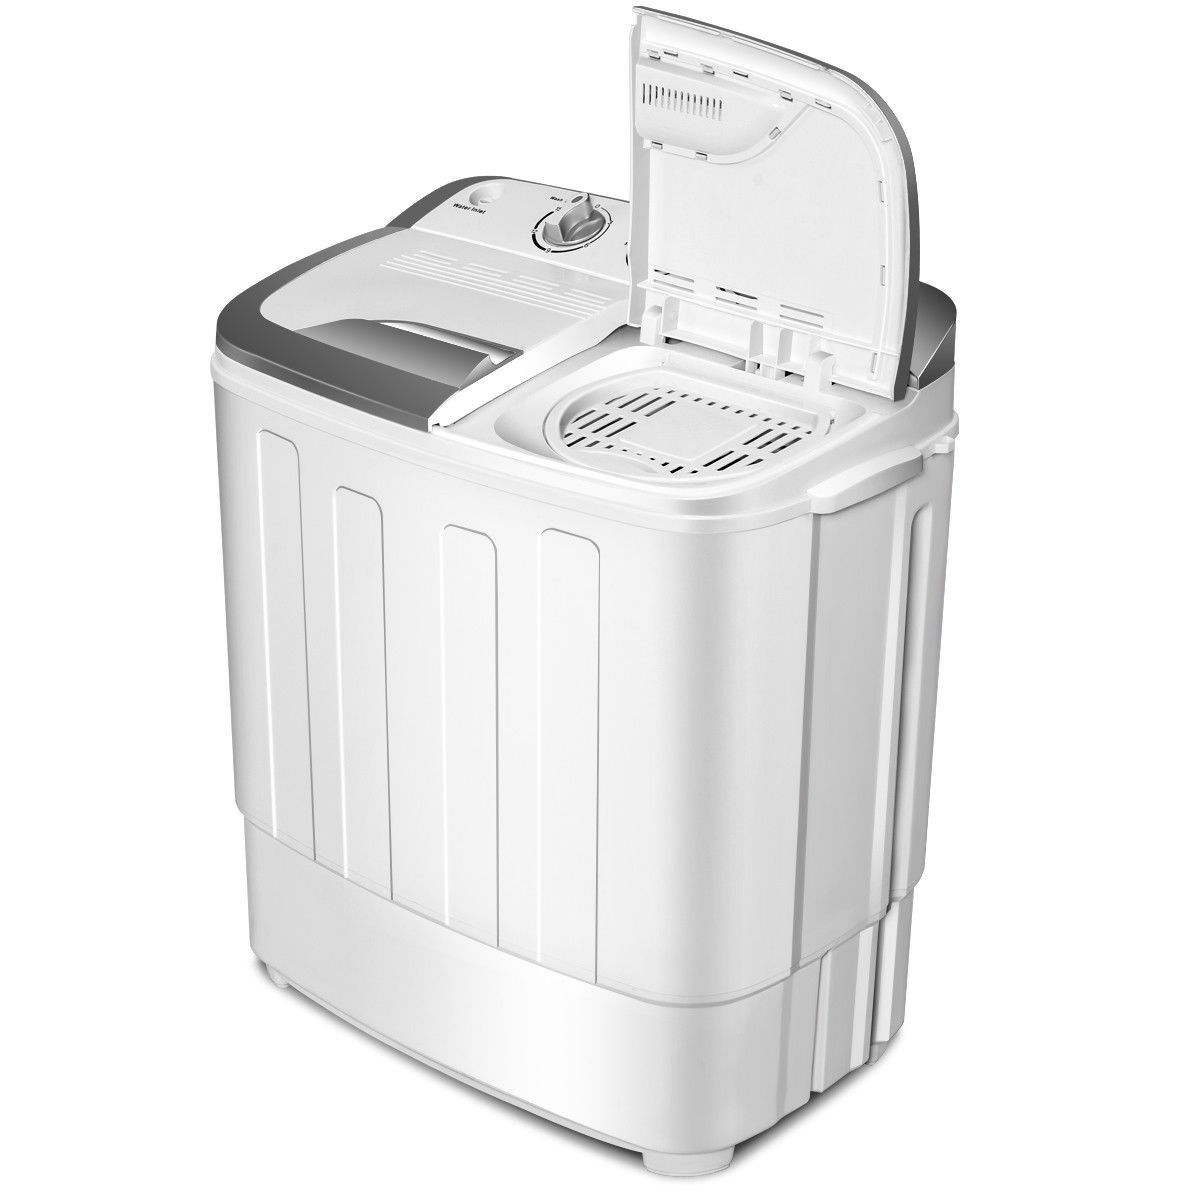 Portable Mini Compact 8 Lbs Compact Mini Twin Tub Dryer Washing Machine Color Gray And White Dimension 23 Portable Washing Machine Portable Washer Twin Tub